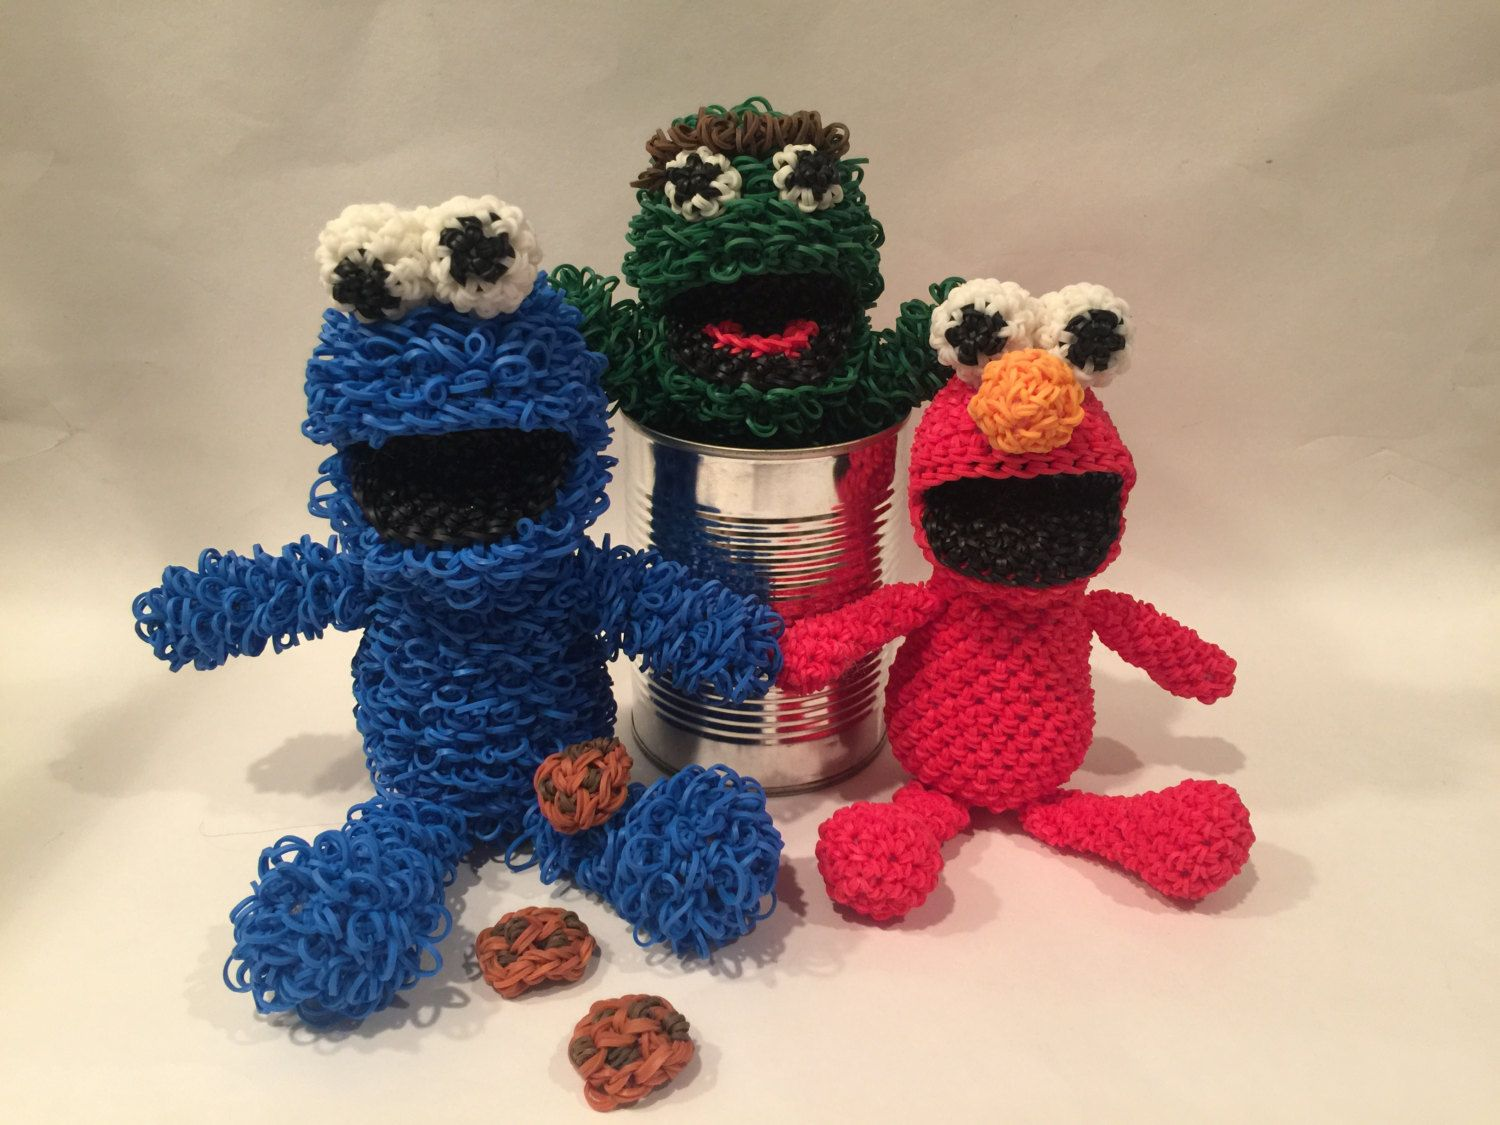 Cookie Monster Elmo Oscar The Grouch Combo Play Pack Rubber Band Rainbow Loom Diagram Figure Loomigurumi Disney By Bblncreations On Etsy